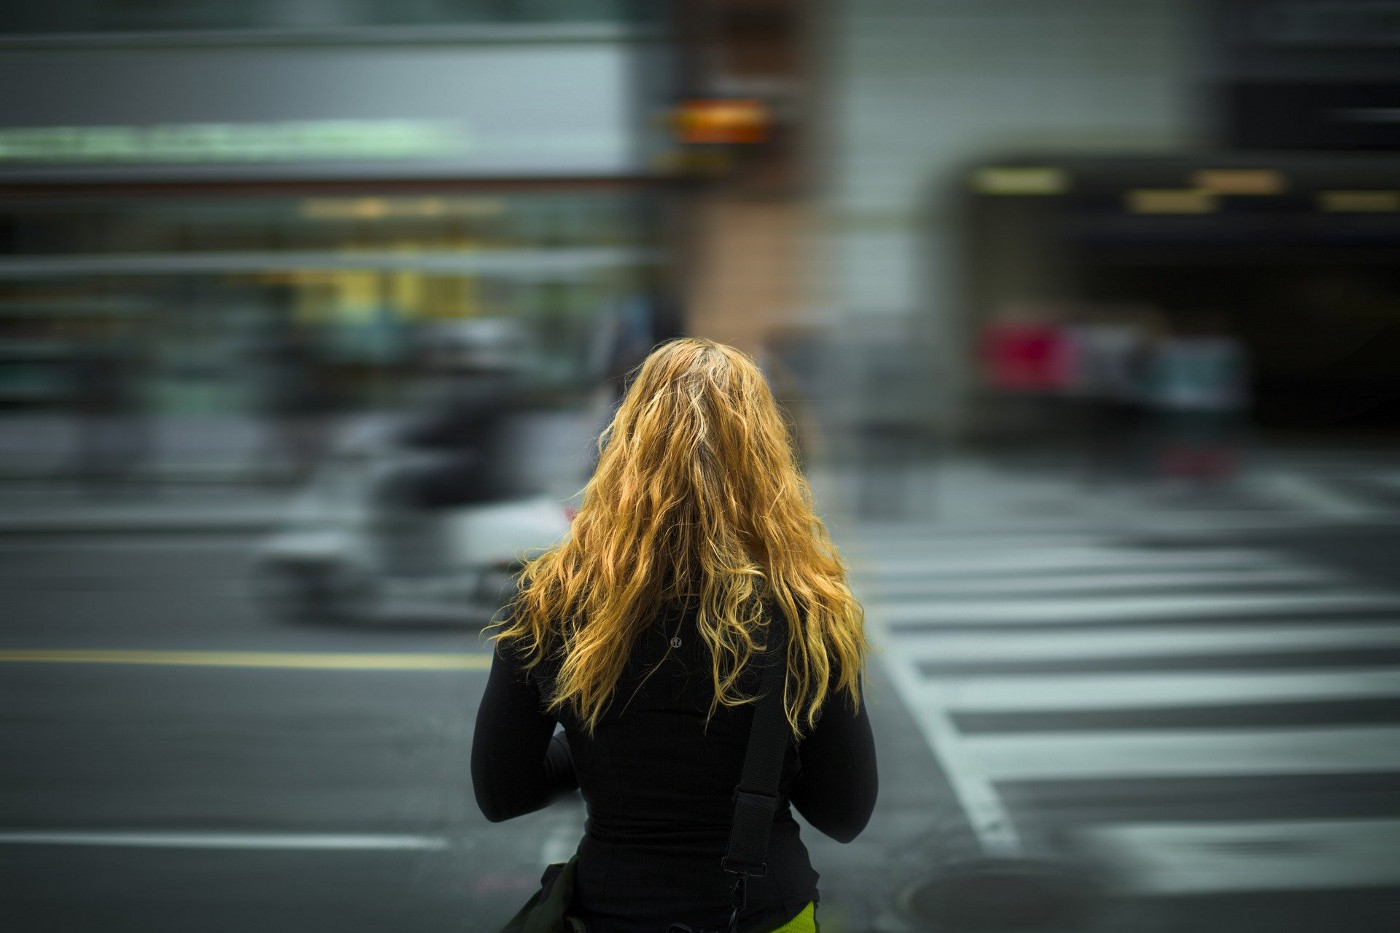 A woman with long, wavy brown hair and a dark top has her back to the camera, and is looking out onto a busy, blurred street.